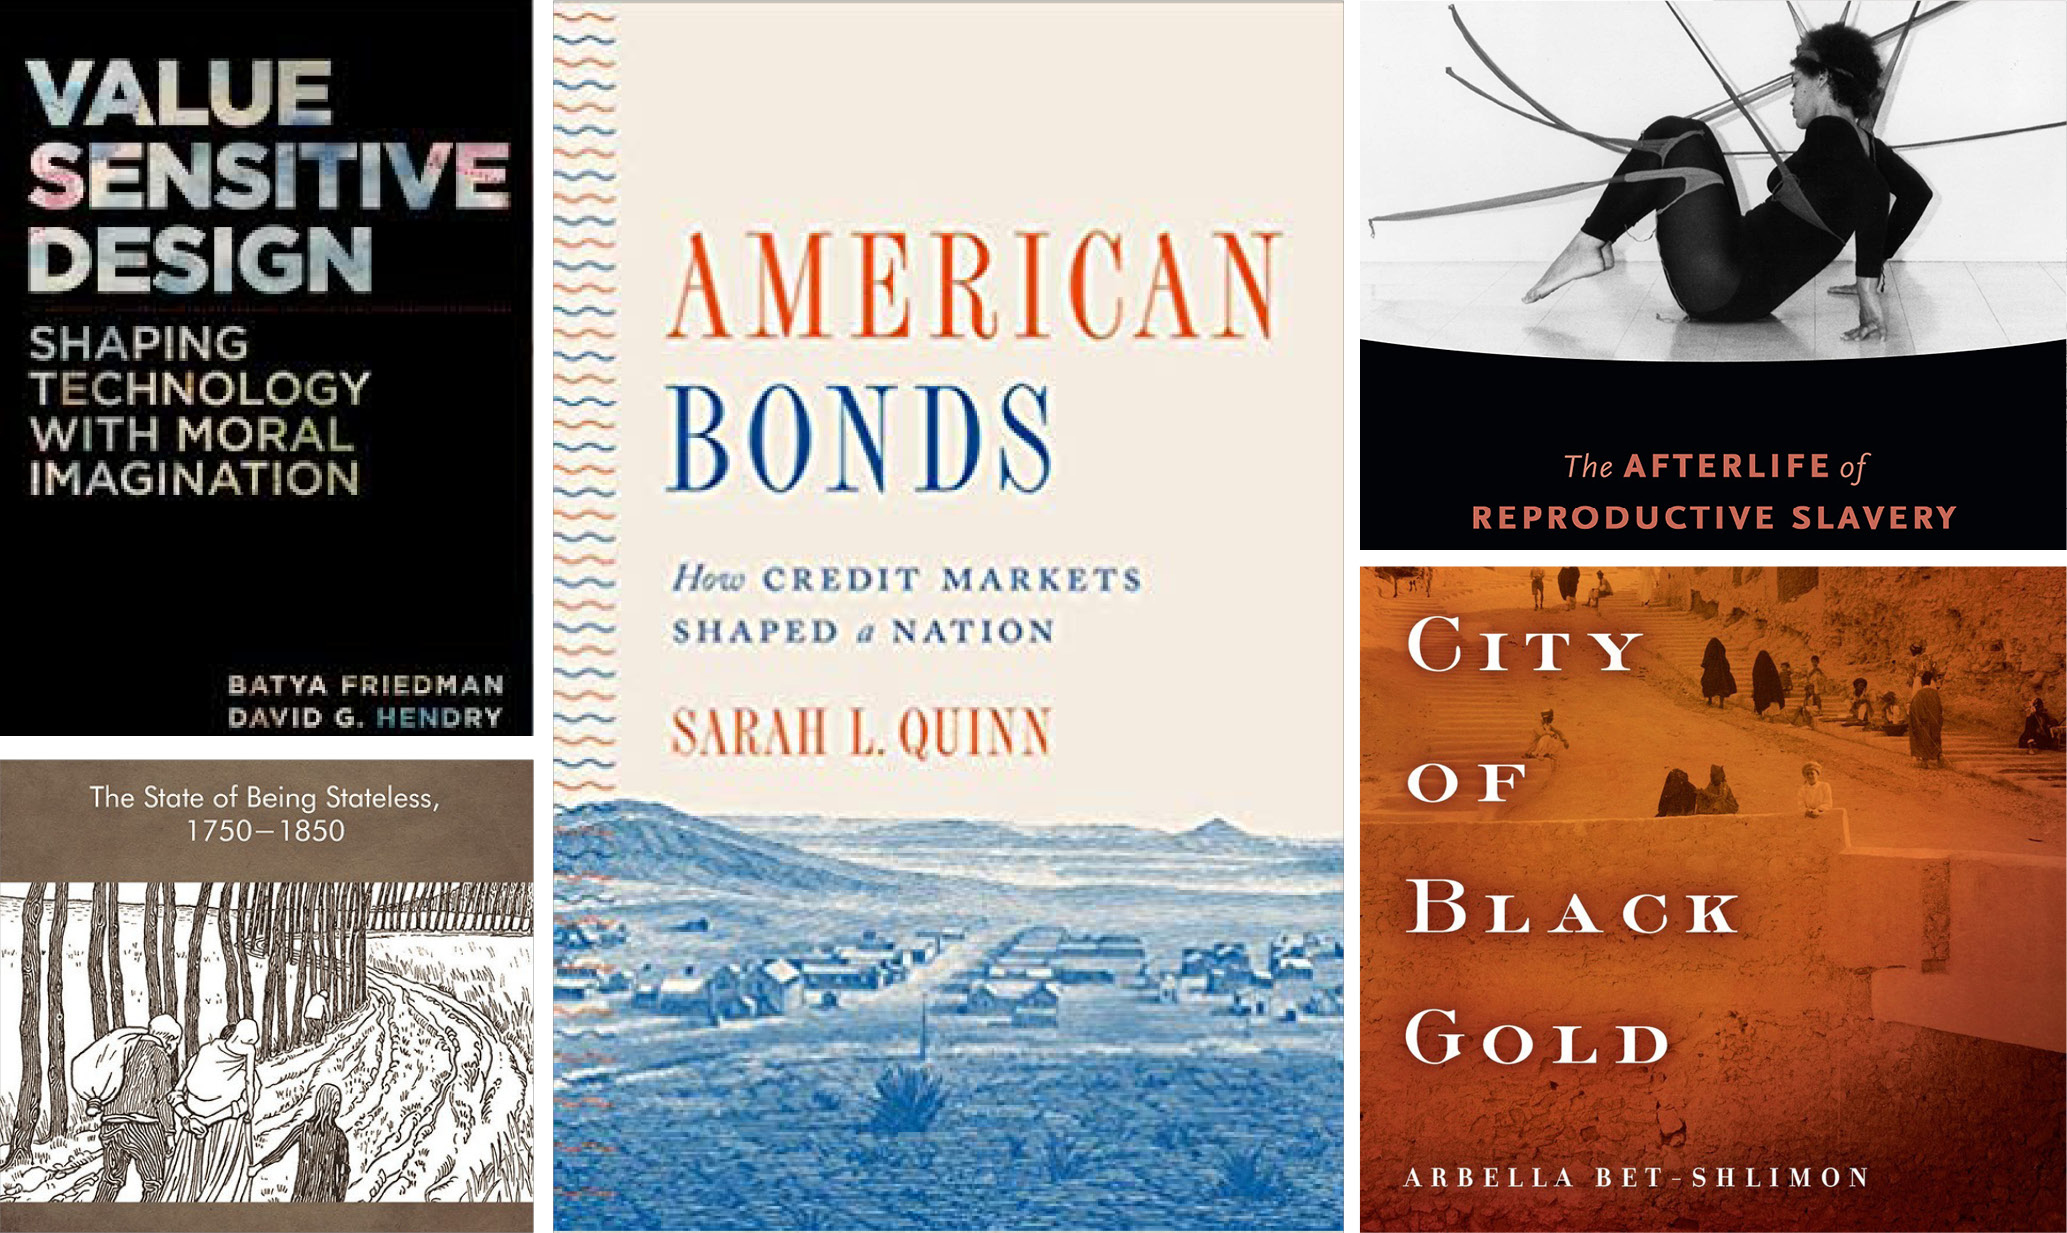 UW Books in Brief: US credit markets in history, 'value sensitive' design and more